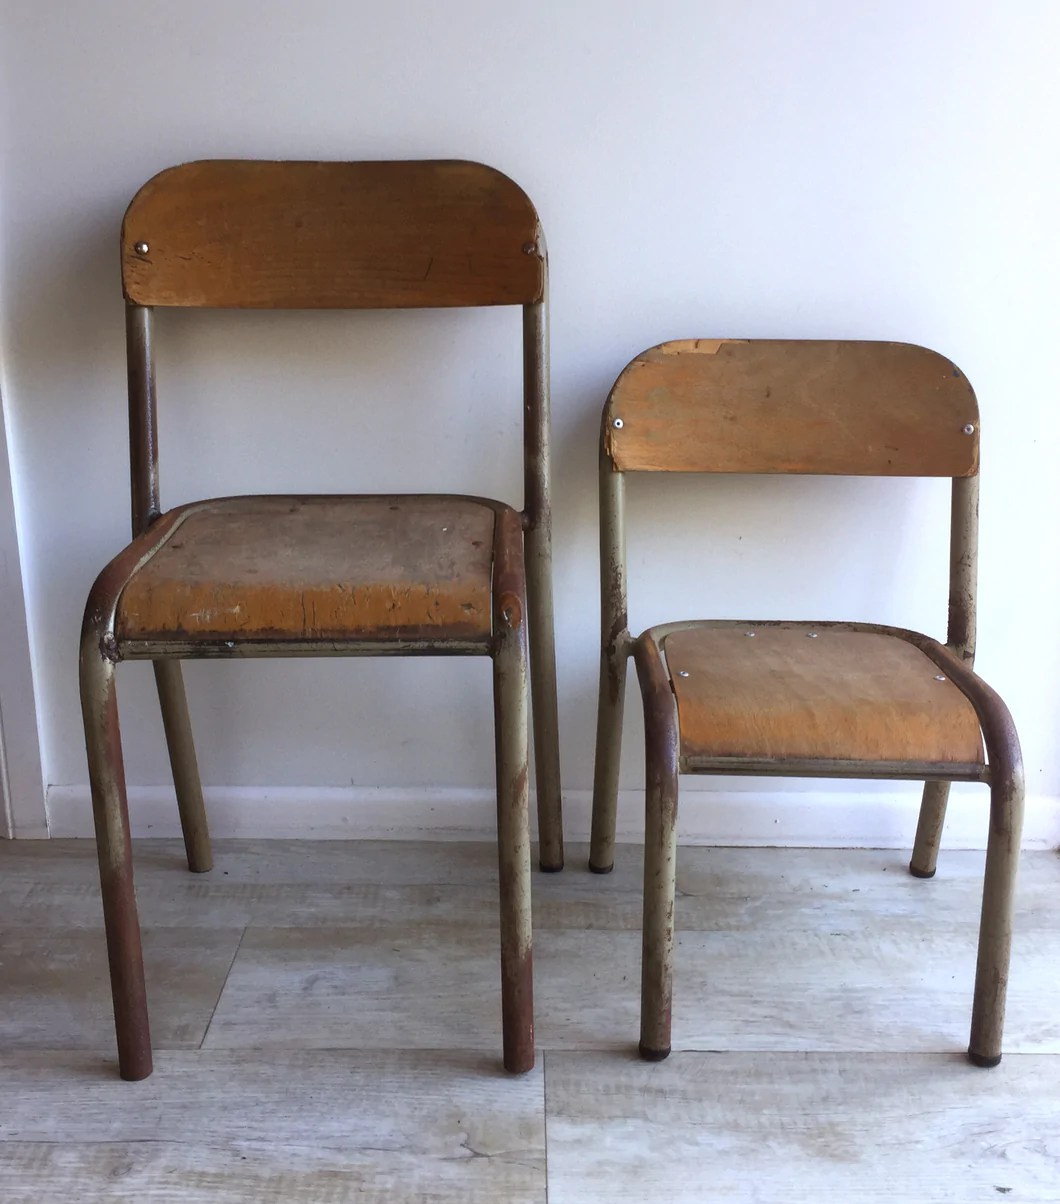 Vintage School Chairs Vintage School Chairs Kids